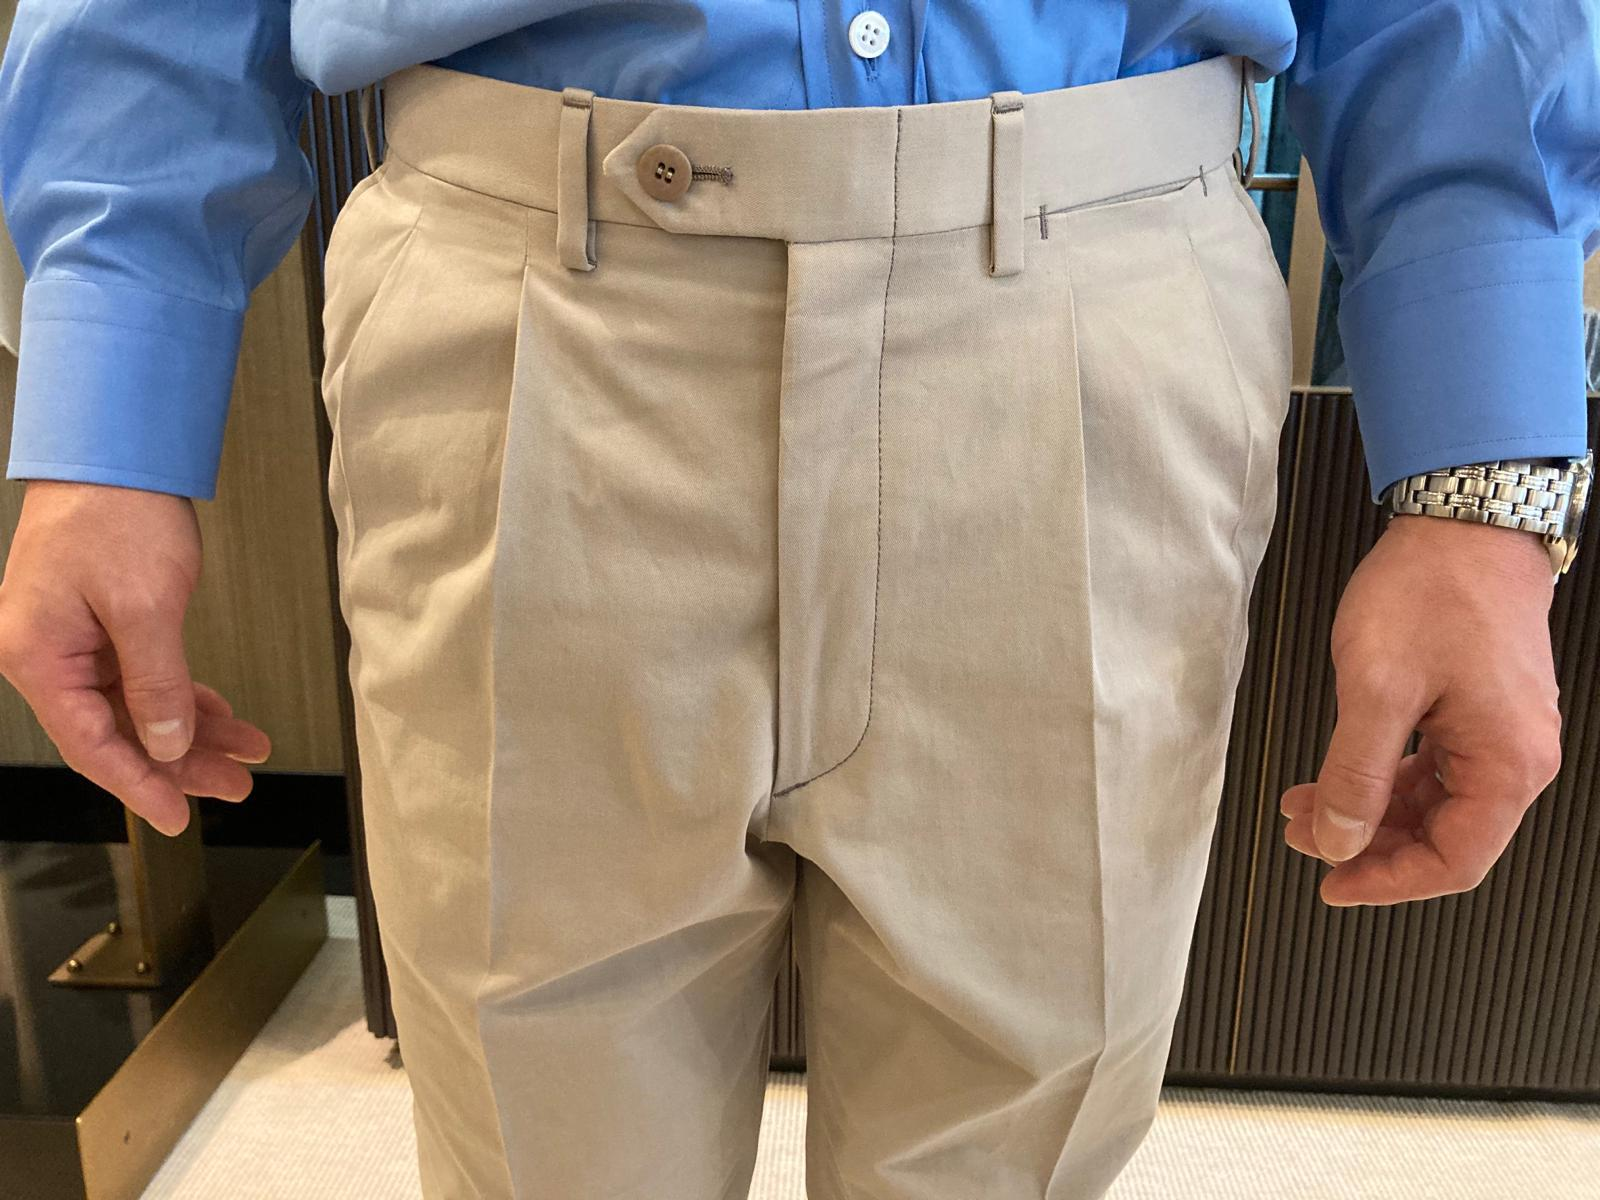 Bespoke Trousers front pleats and closures